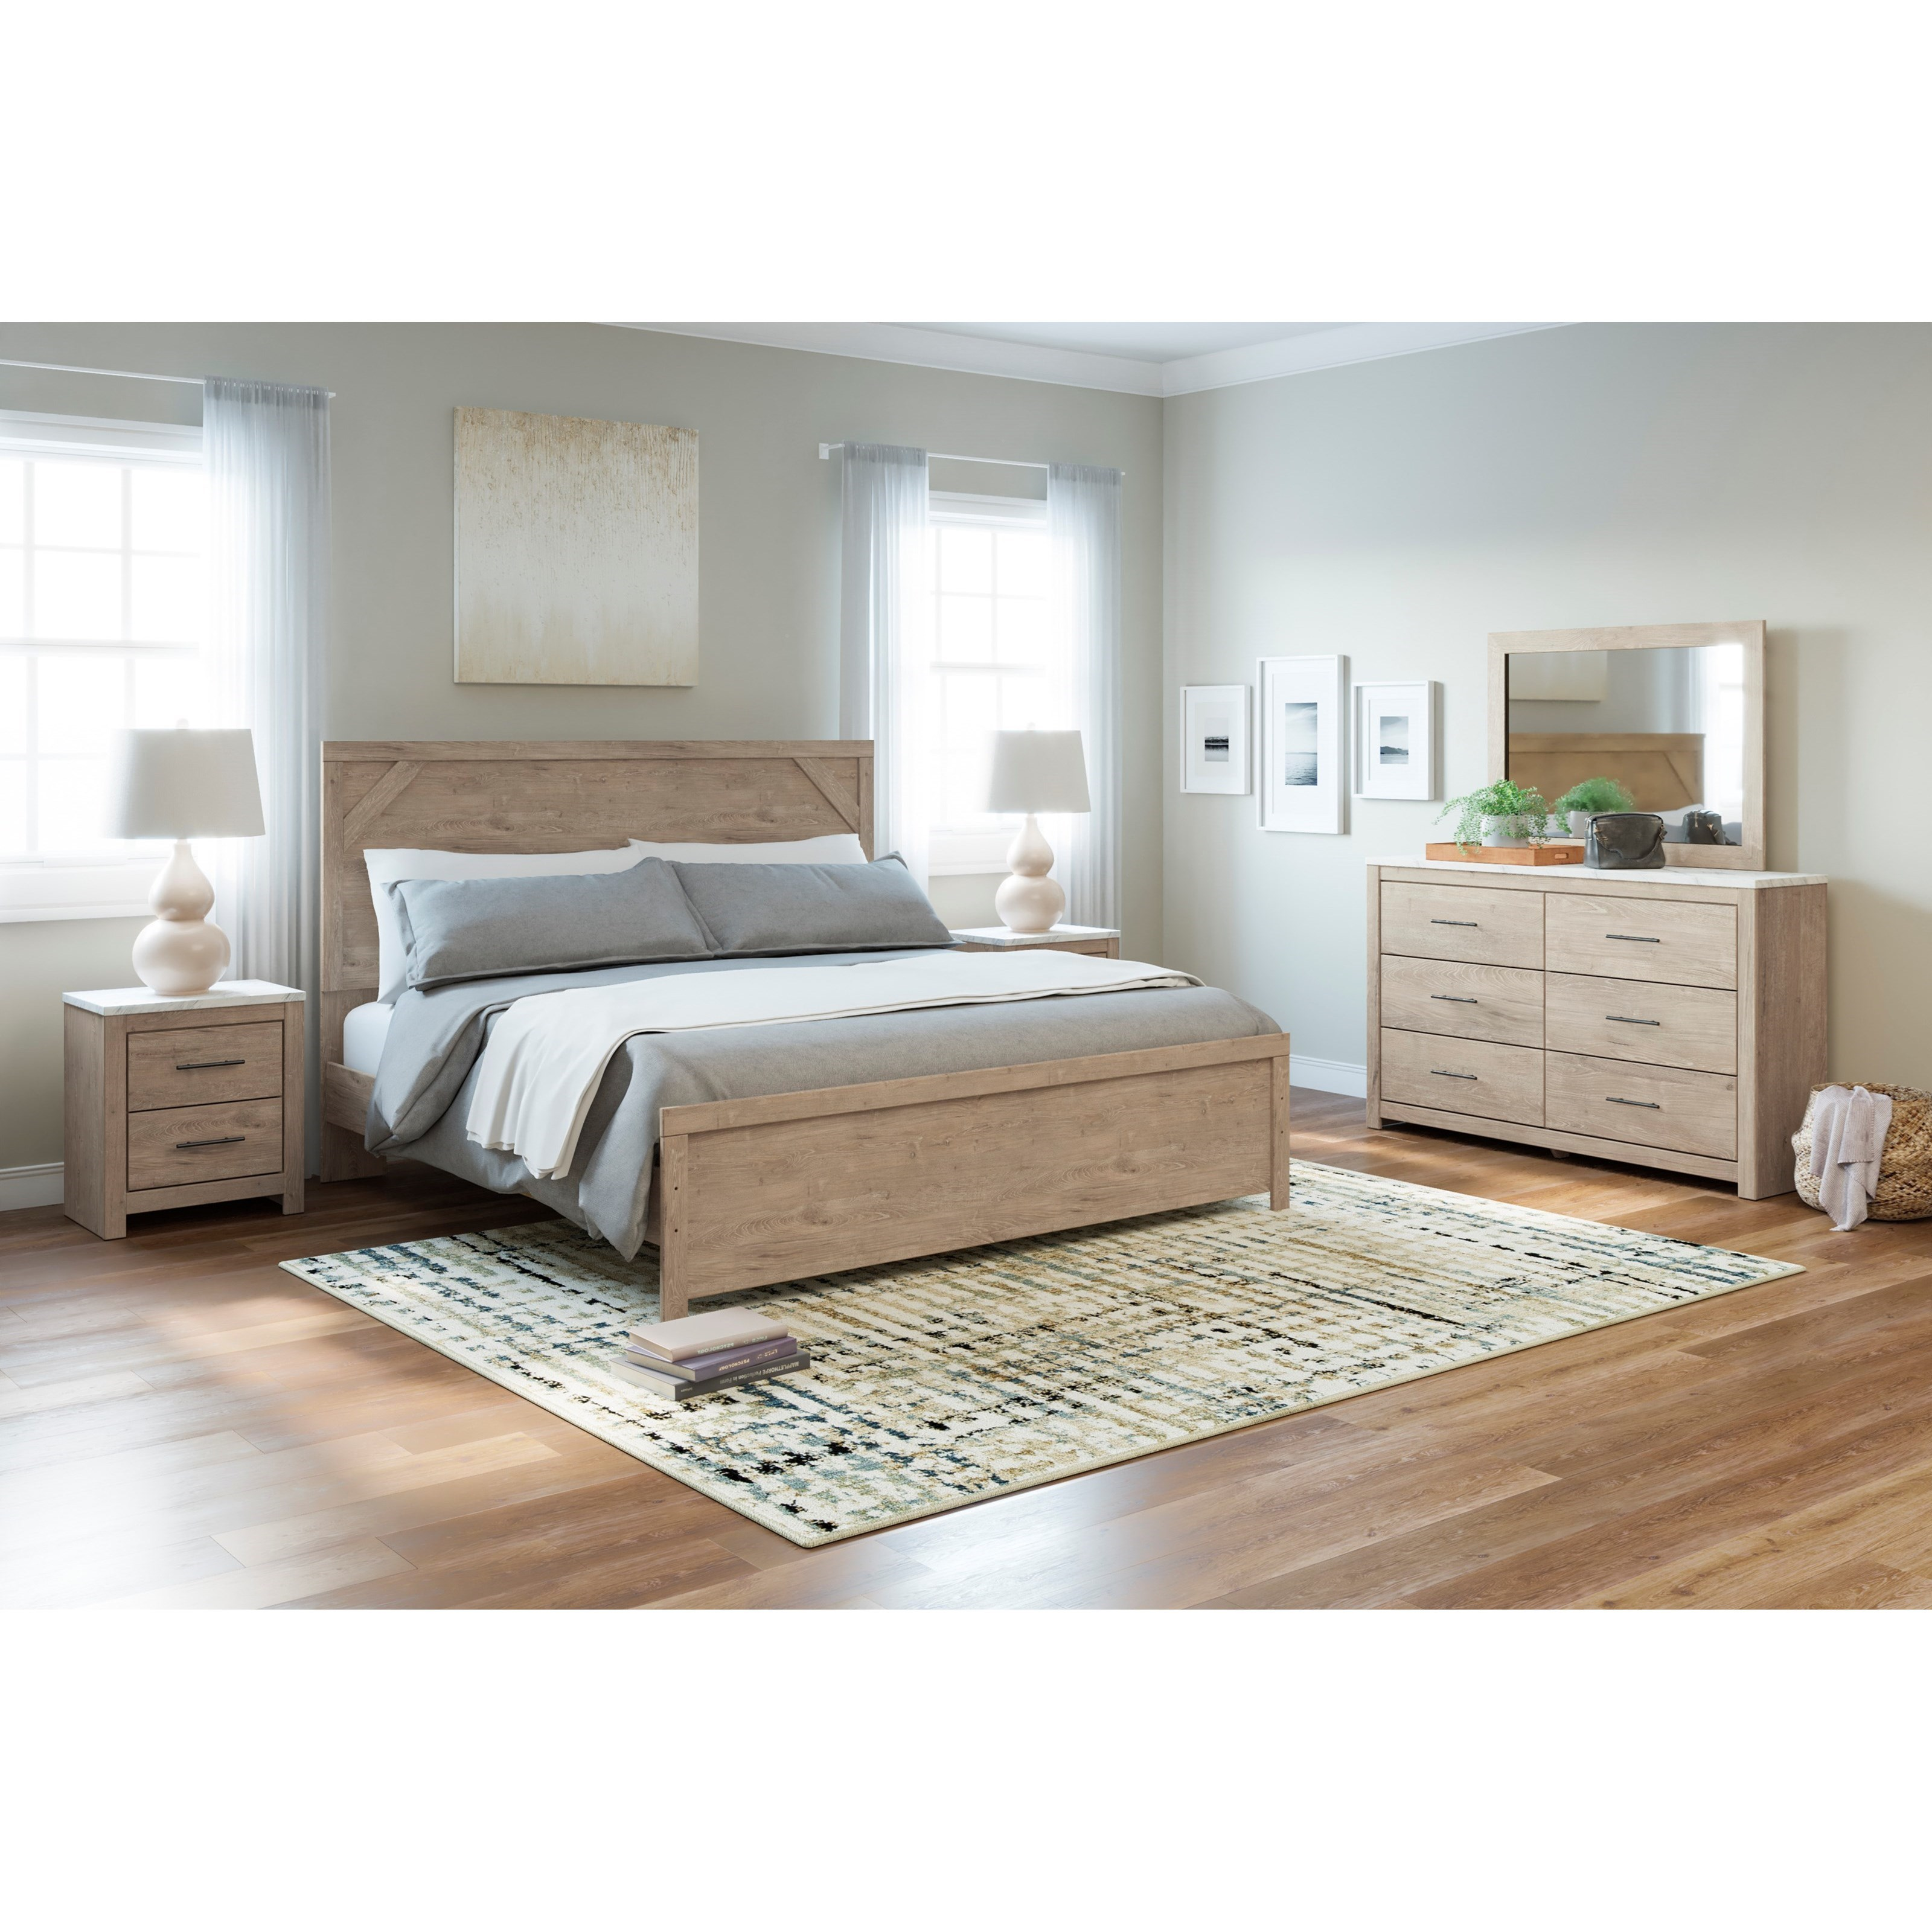 Senniberg King Bedroom Group by Signature Design by Ashley at Suburban Furniture